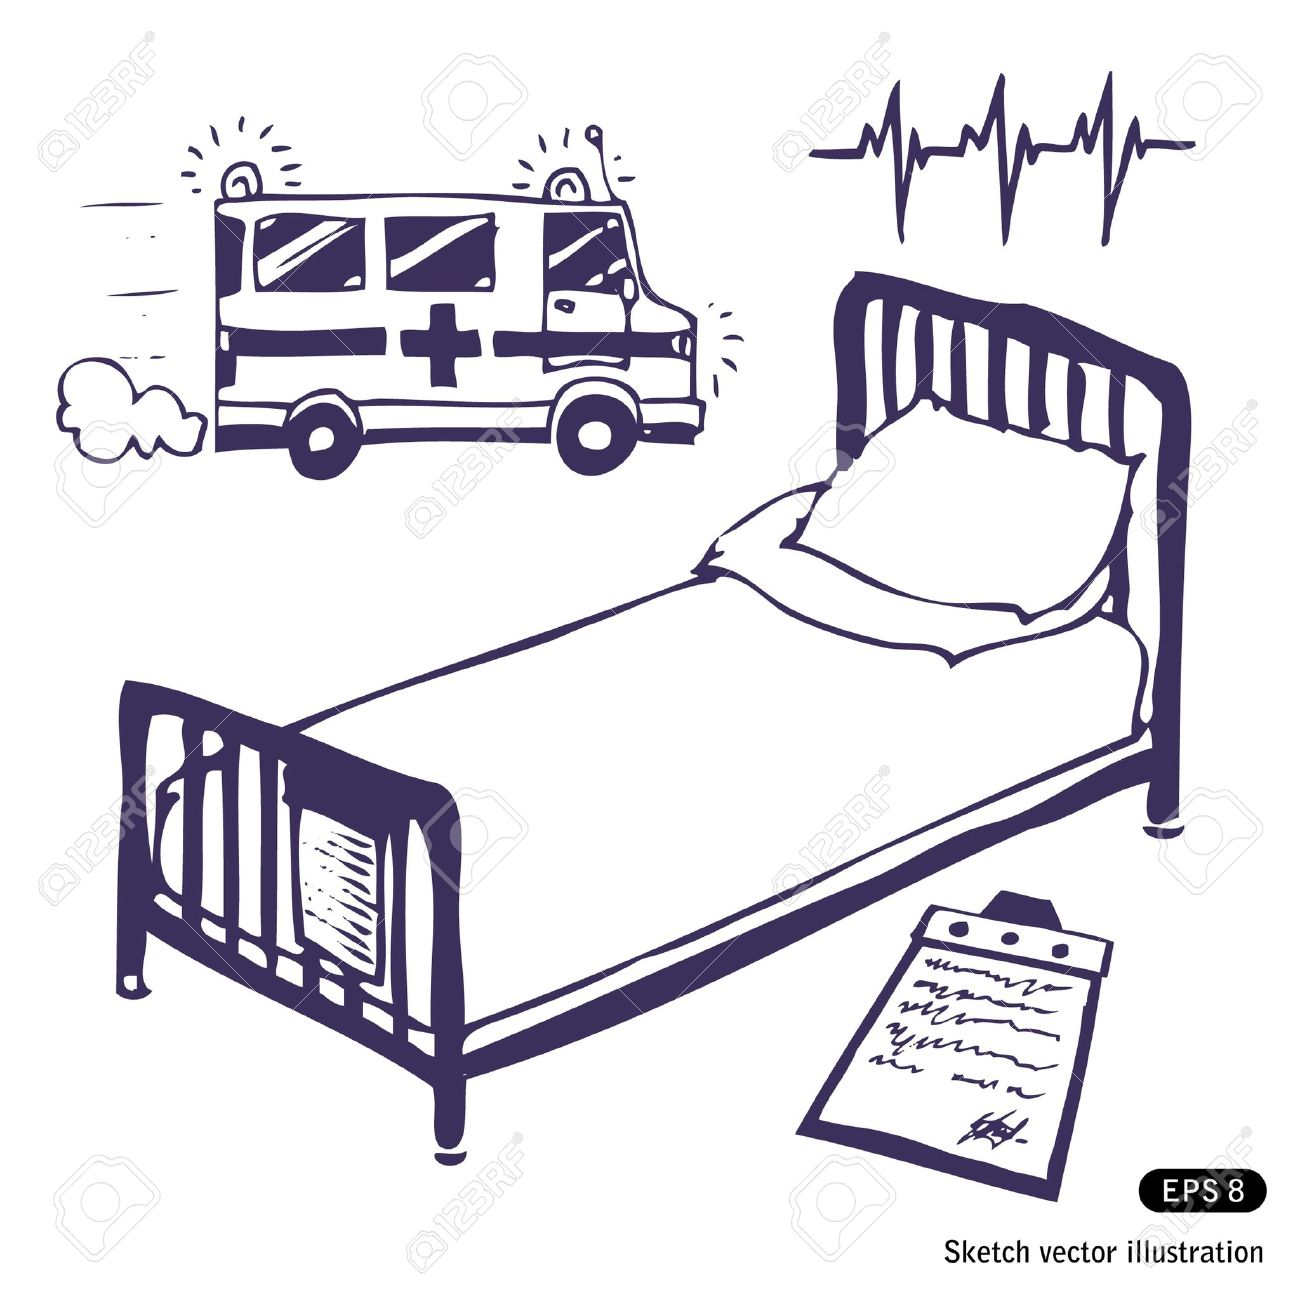 Hospital Bed And Ambulance Hand Drawn Illustration On White Stock Vector